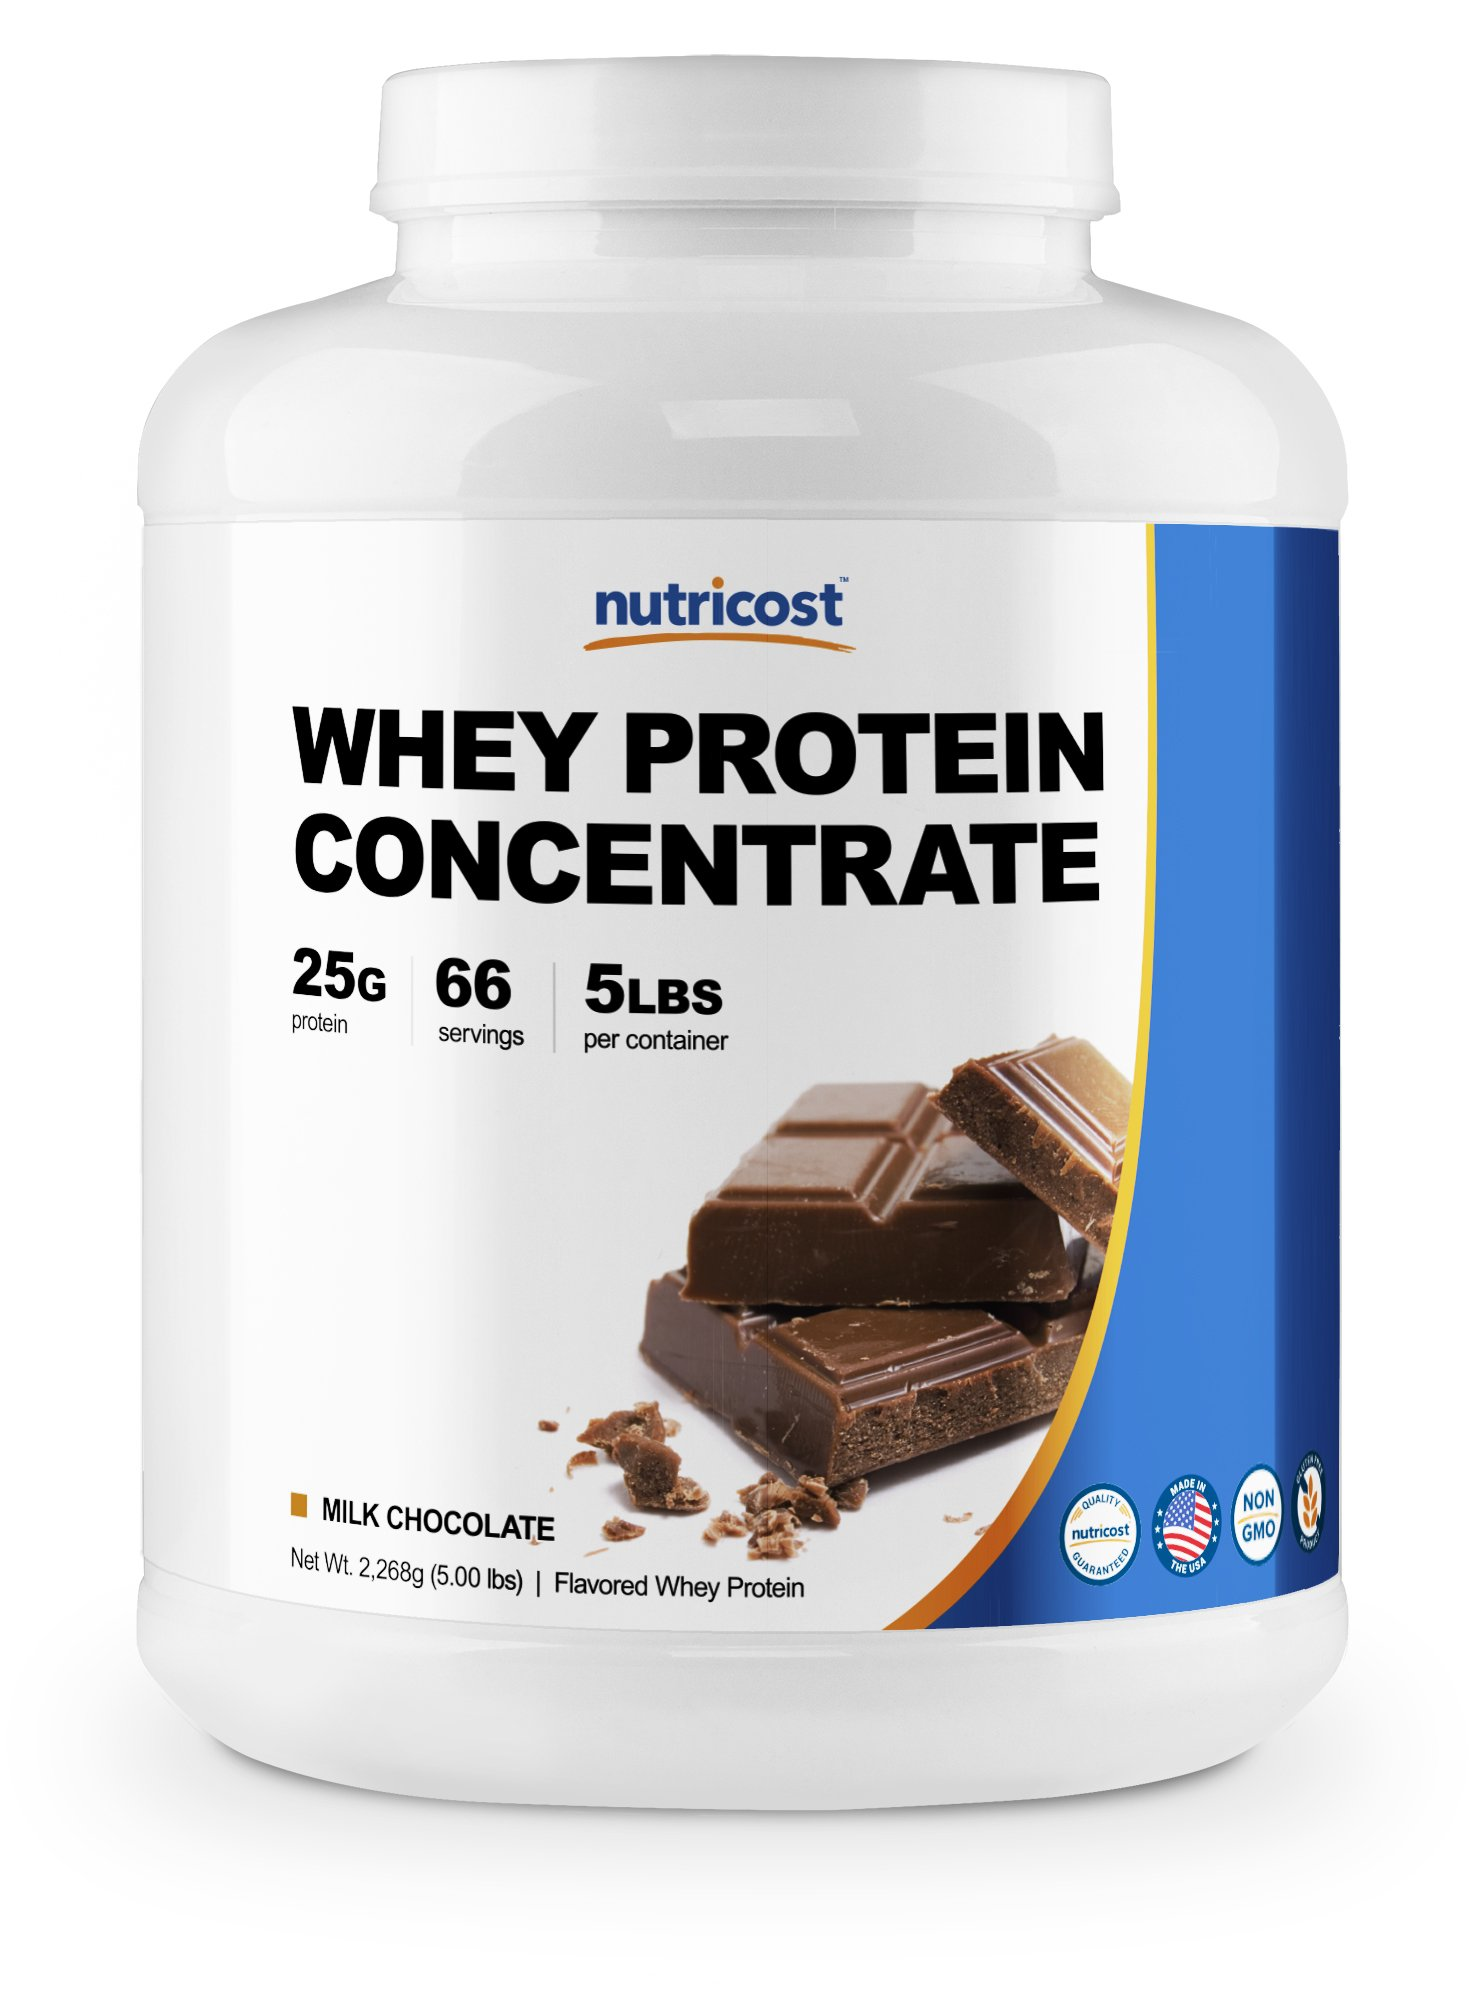 Nutricost Whey Protein Concentrate (Chocolate) 5LBS by Nutricost